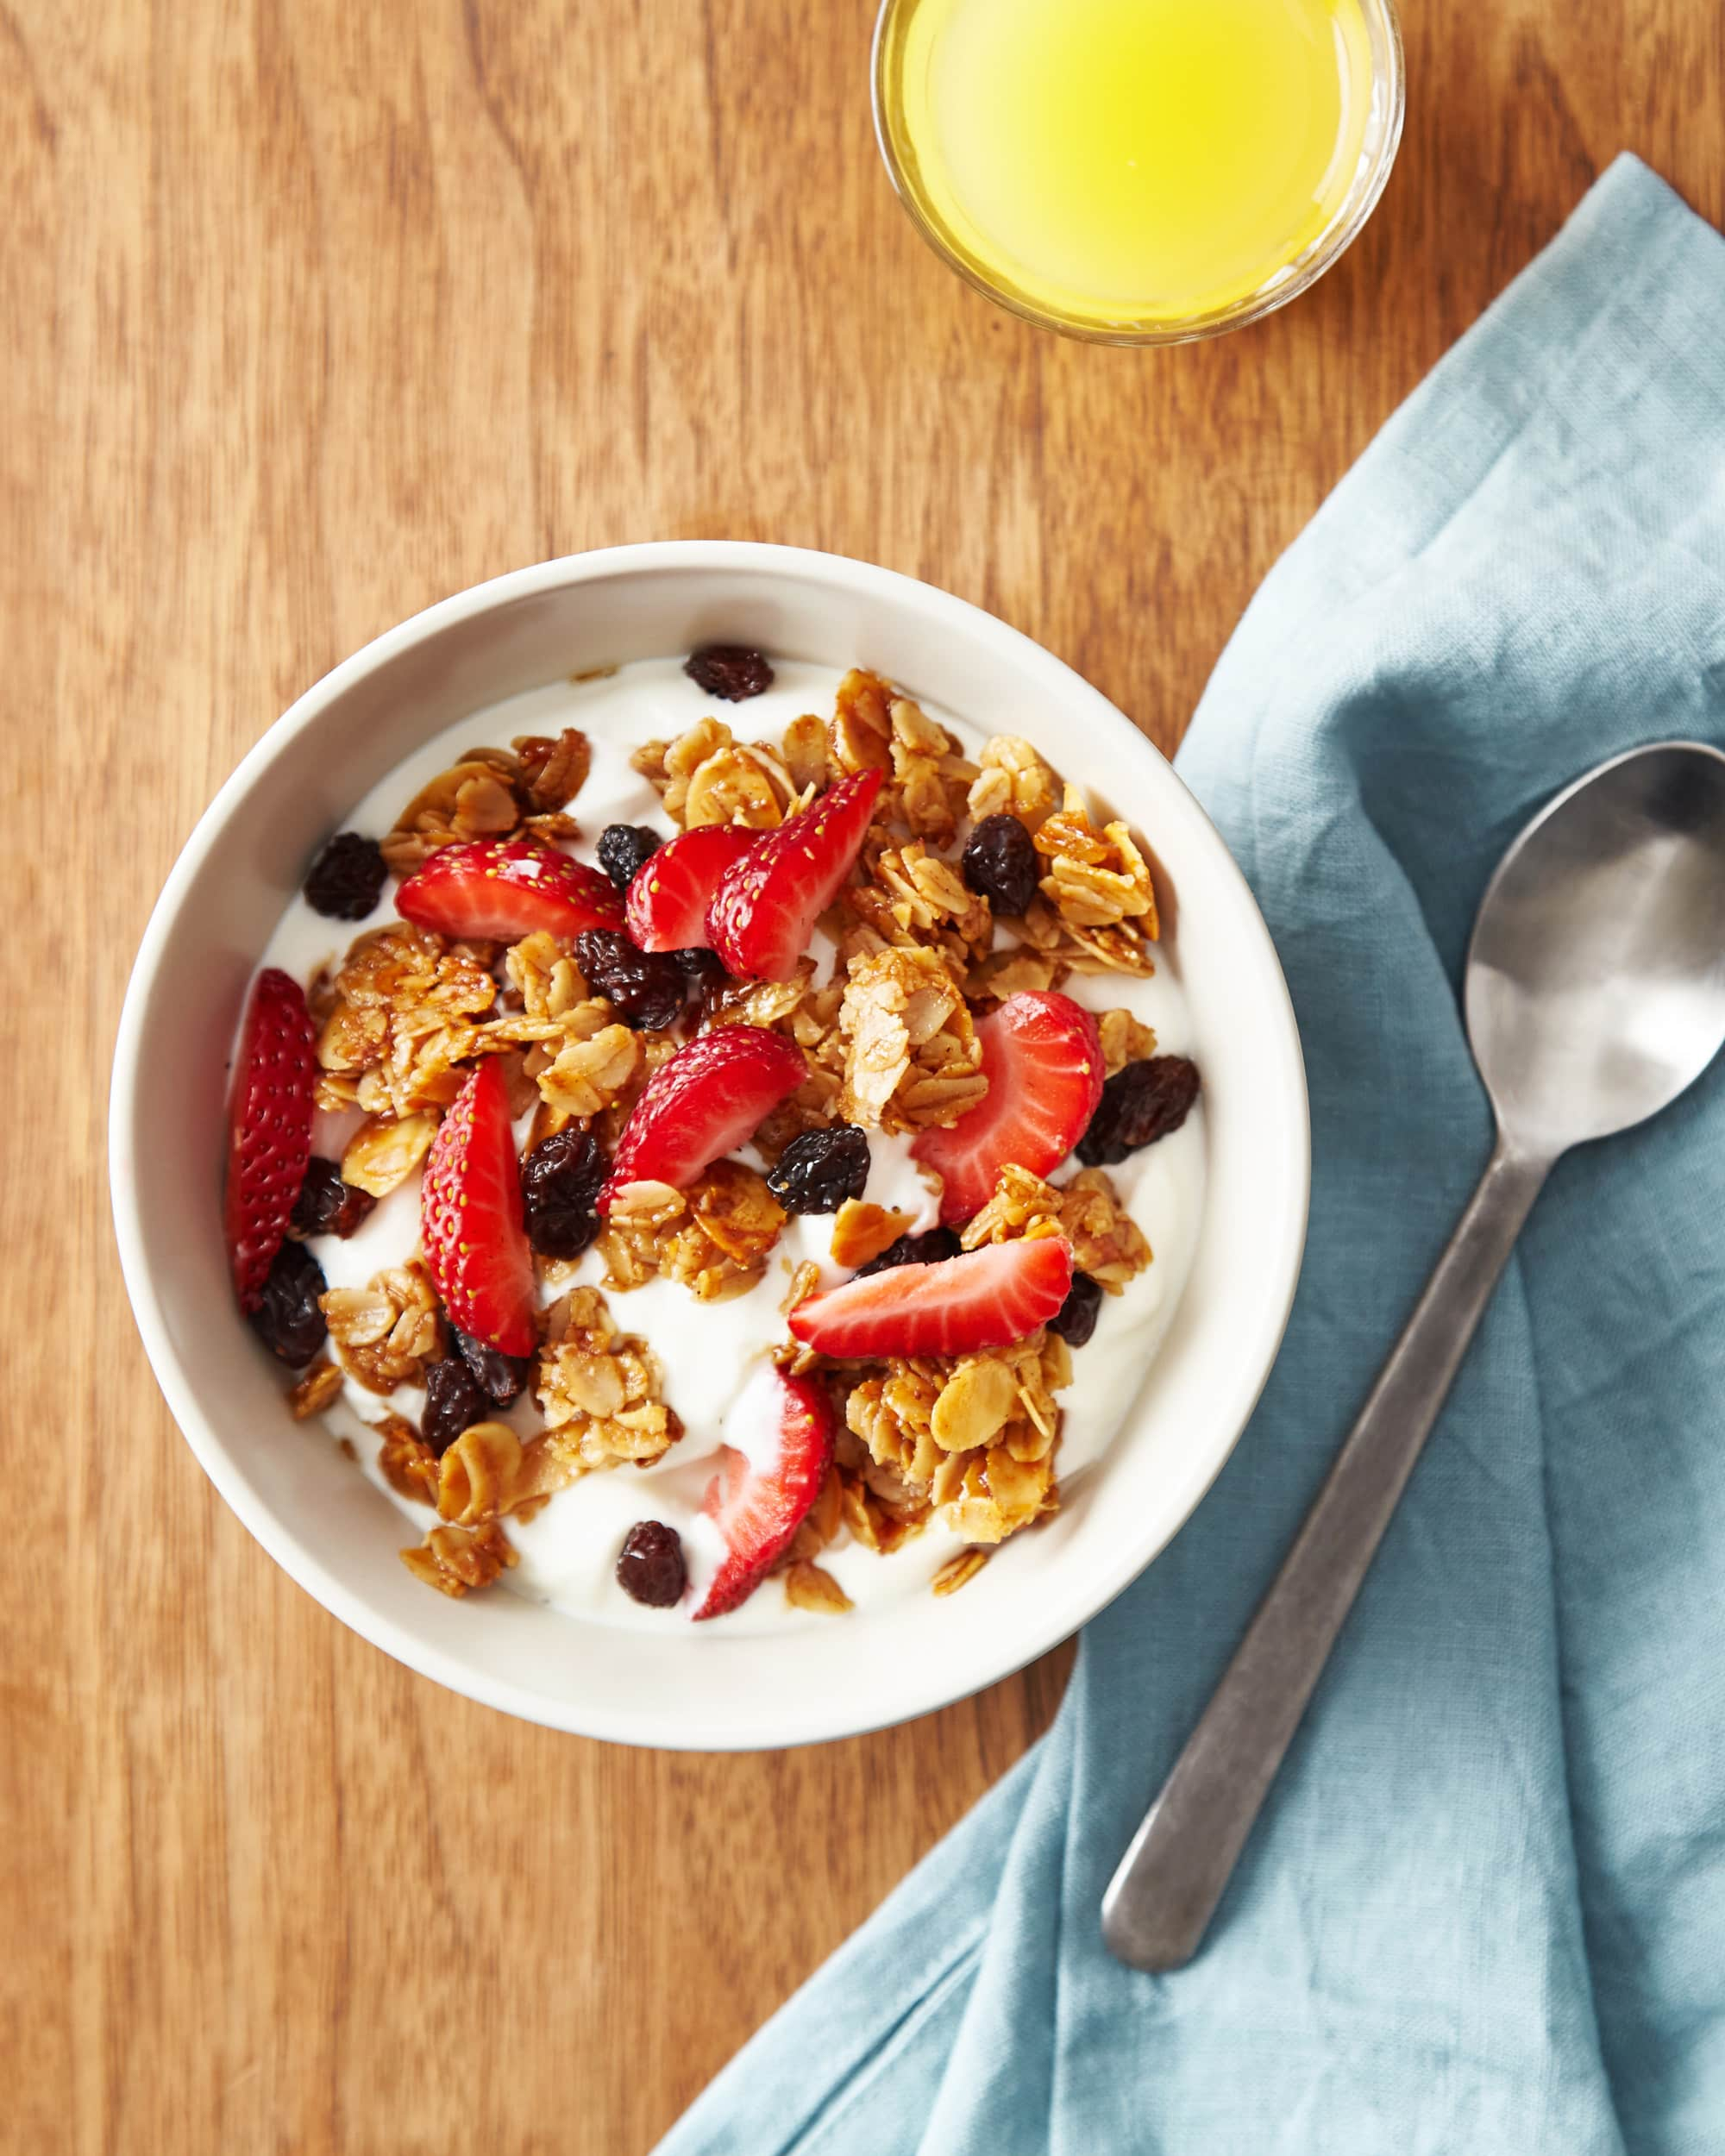 How To Make Easy Homemade Granola: gallery image 1